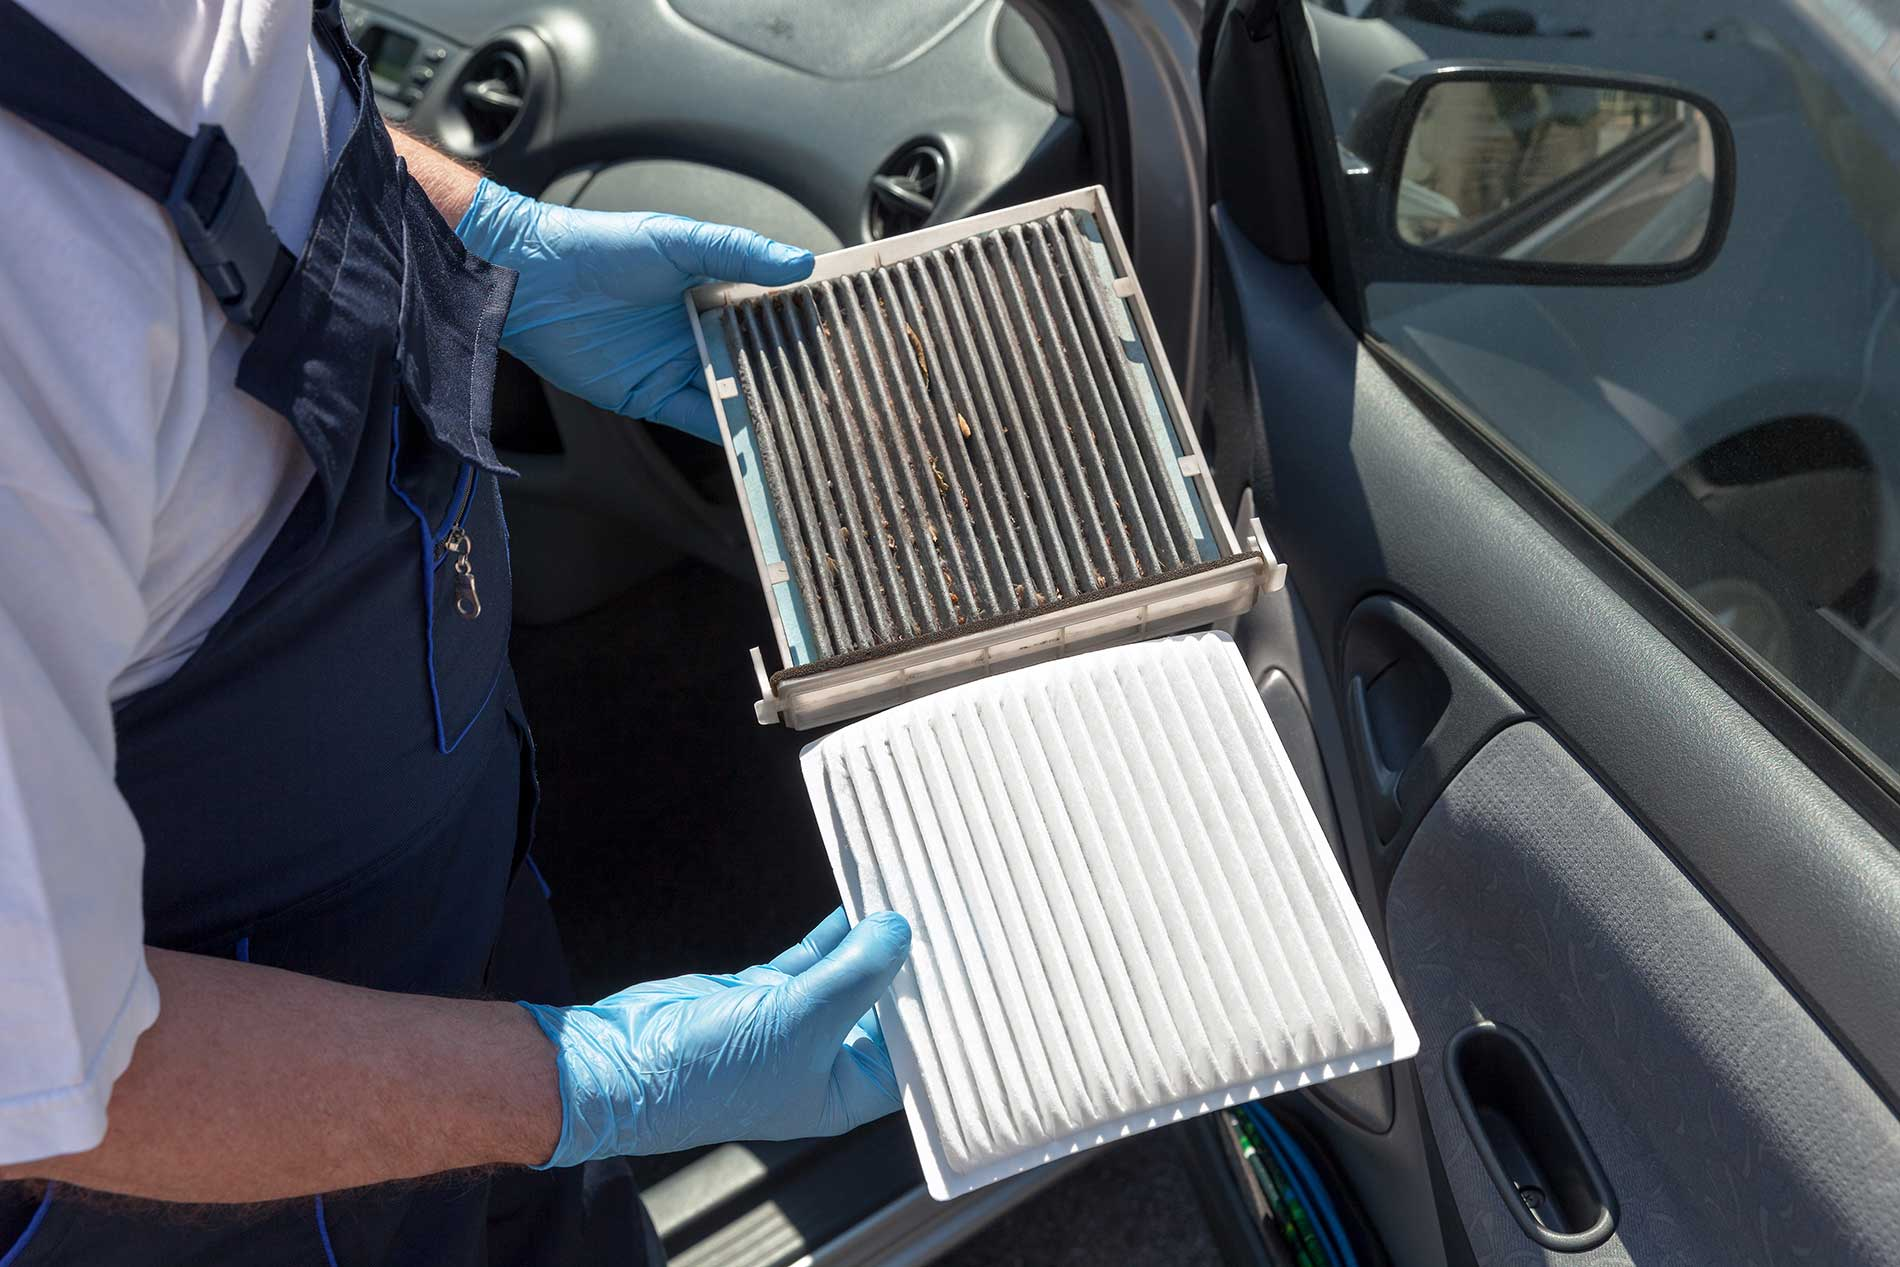 Take-the-Smoke-Out-of-the-Car-with-a-Clean-Filter